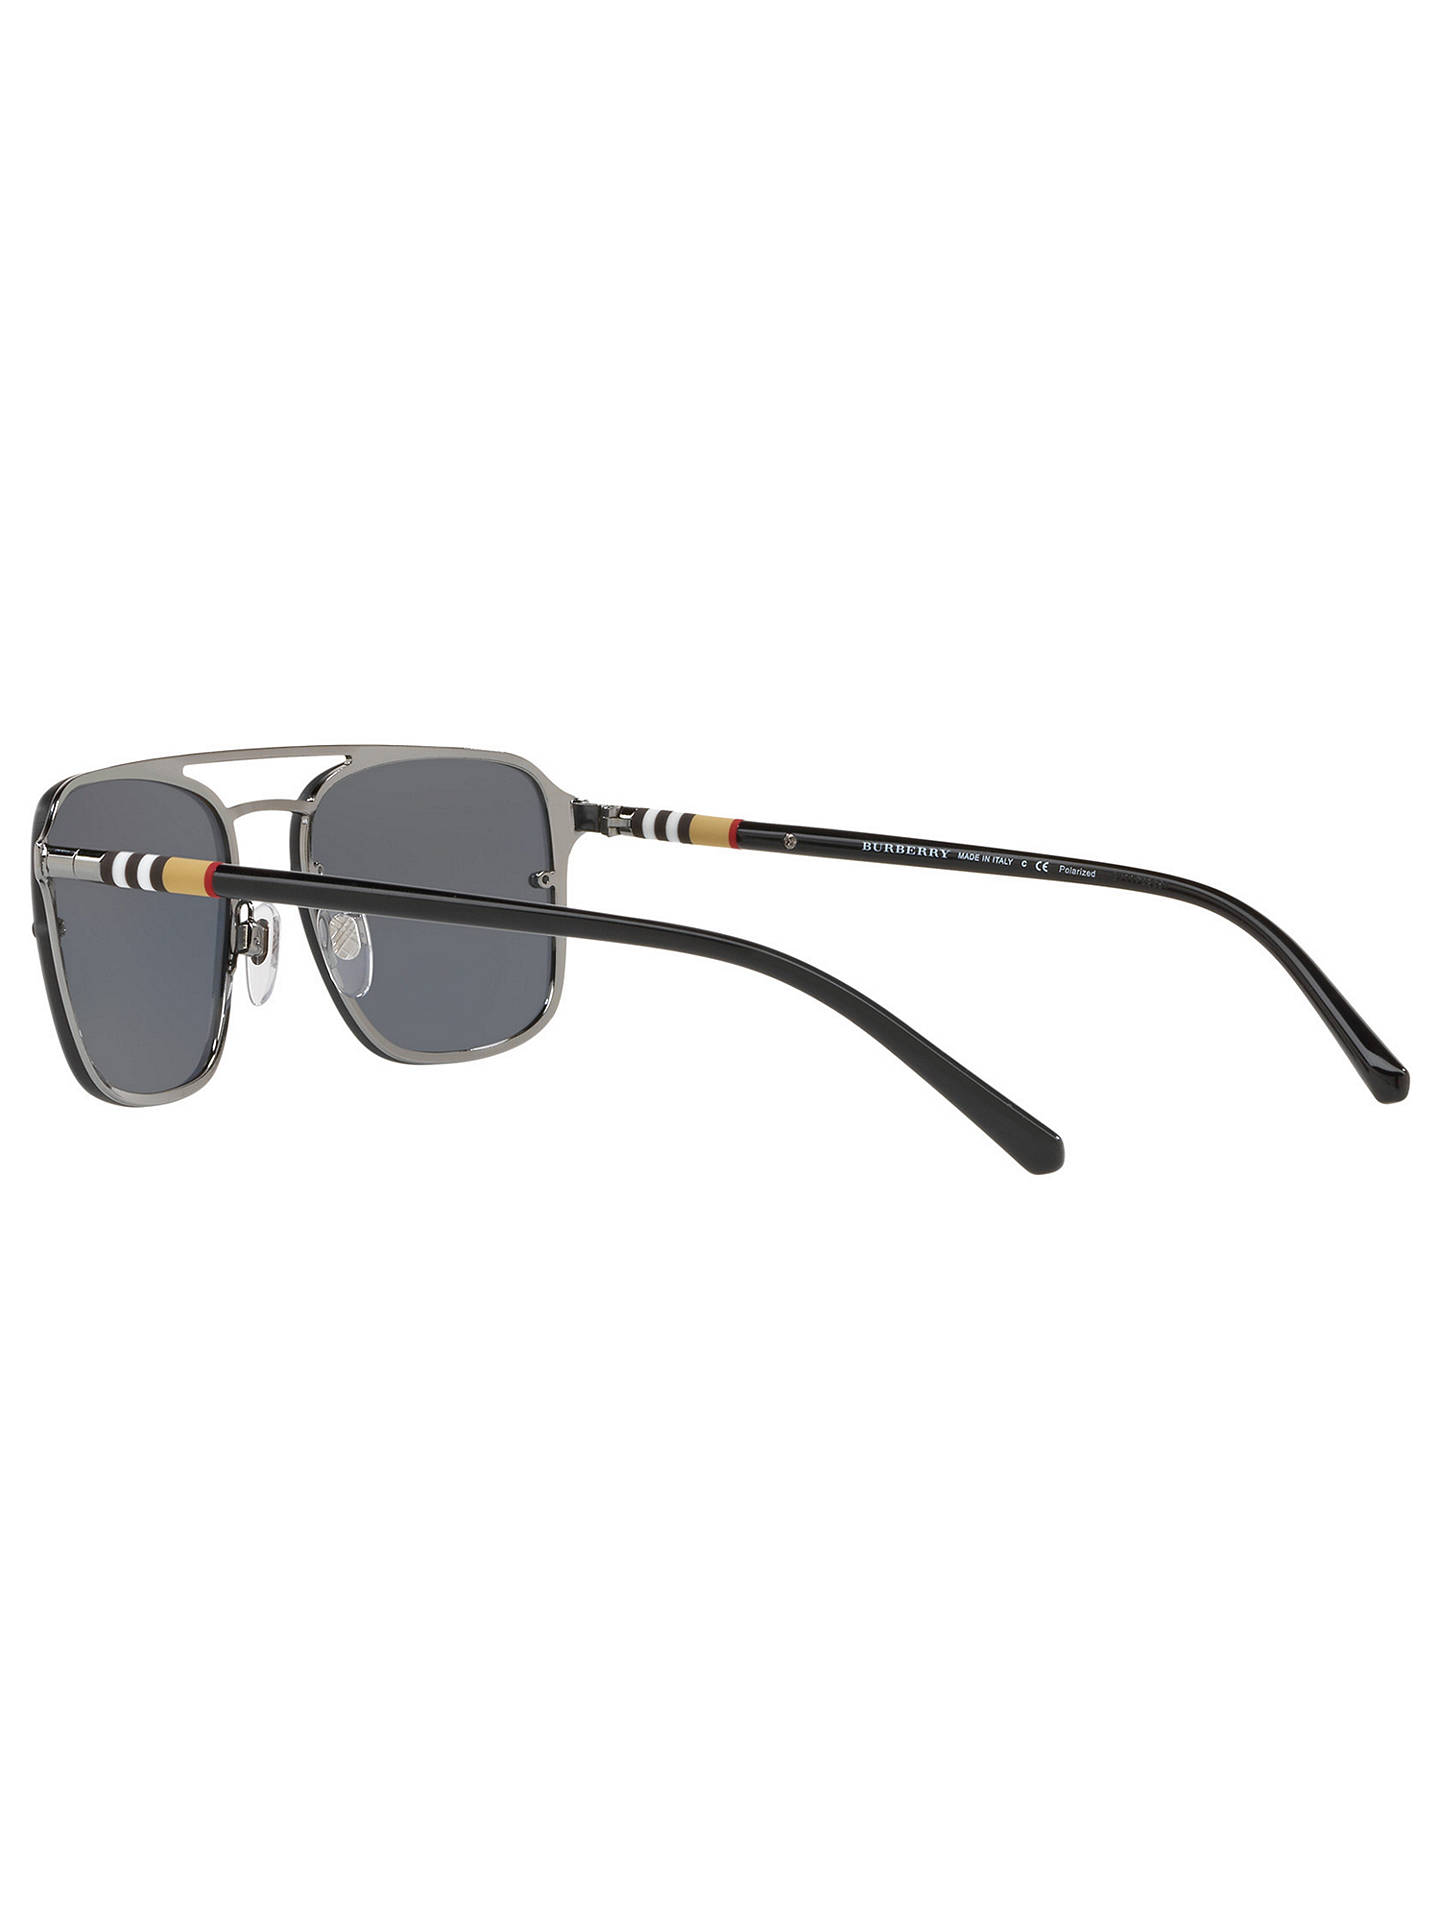 6bbb7a81671f ... Buy Burberry BE3095 Men's Polarised Square Sunglasses, Grey Online at  johnlewis. ...